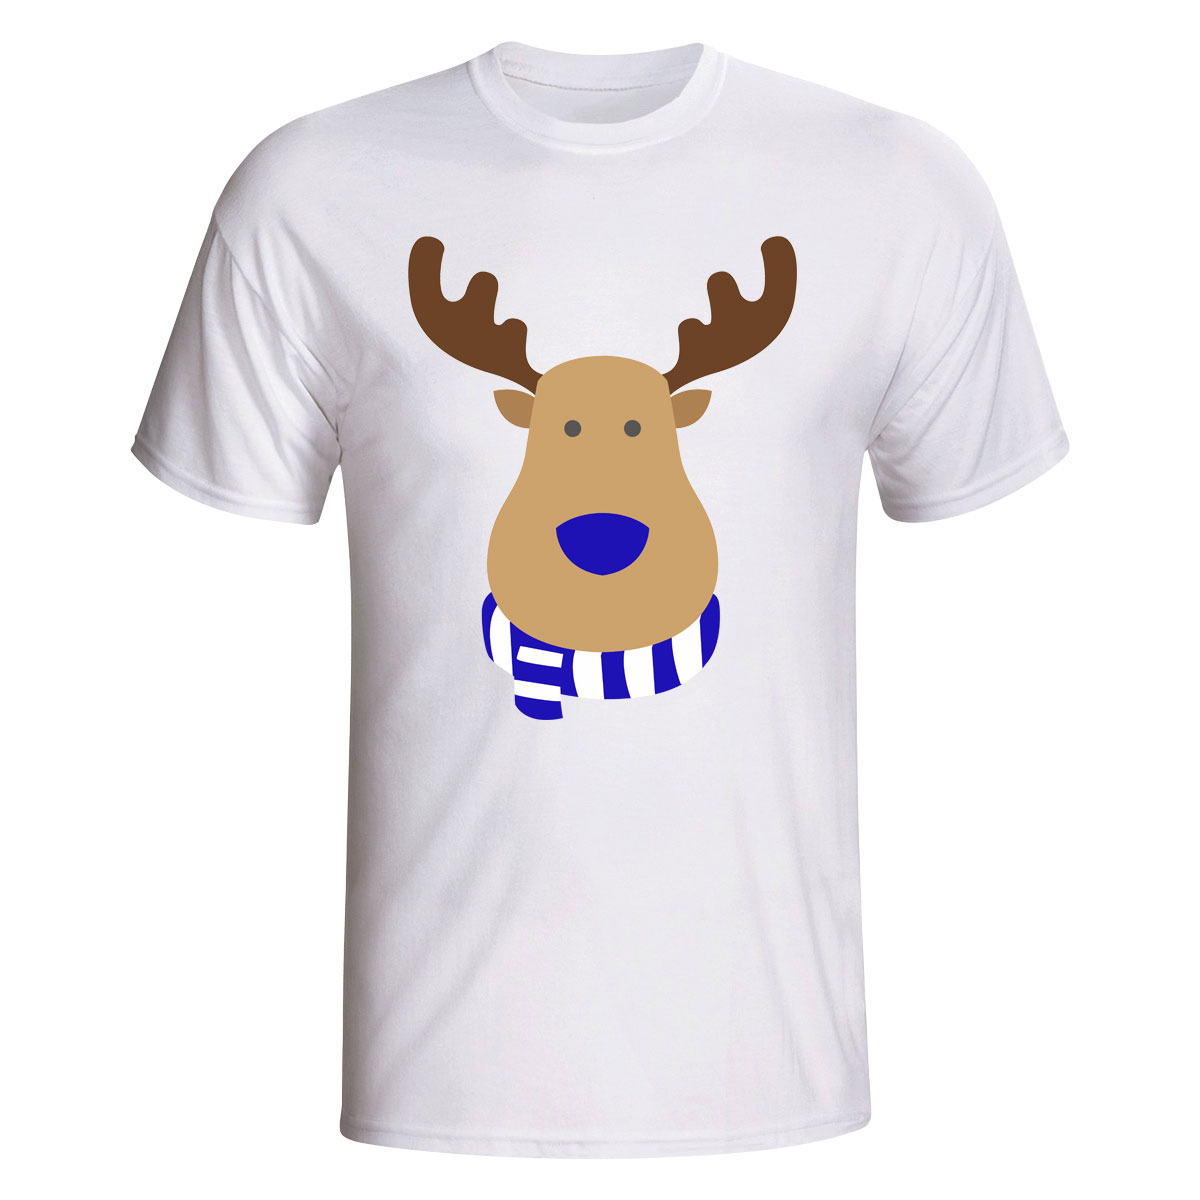 real-oviedo-rudolph-supporters-t-shirt-white-s